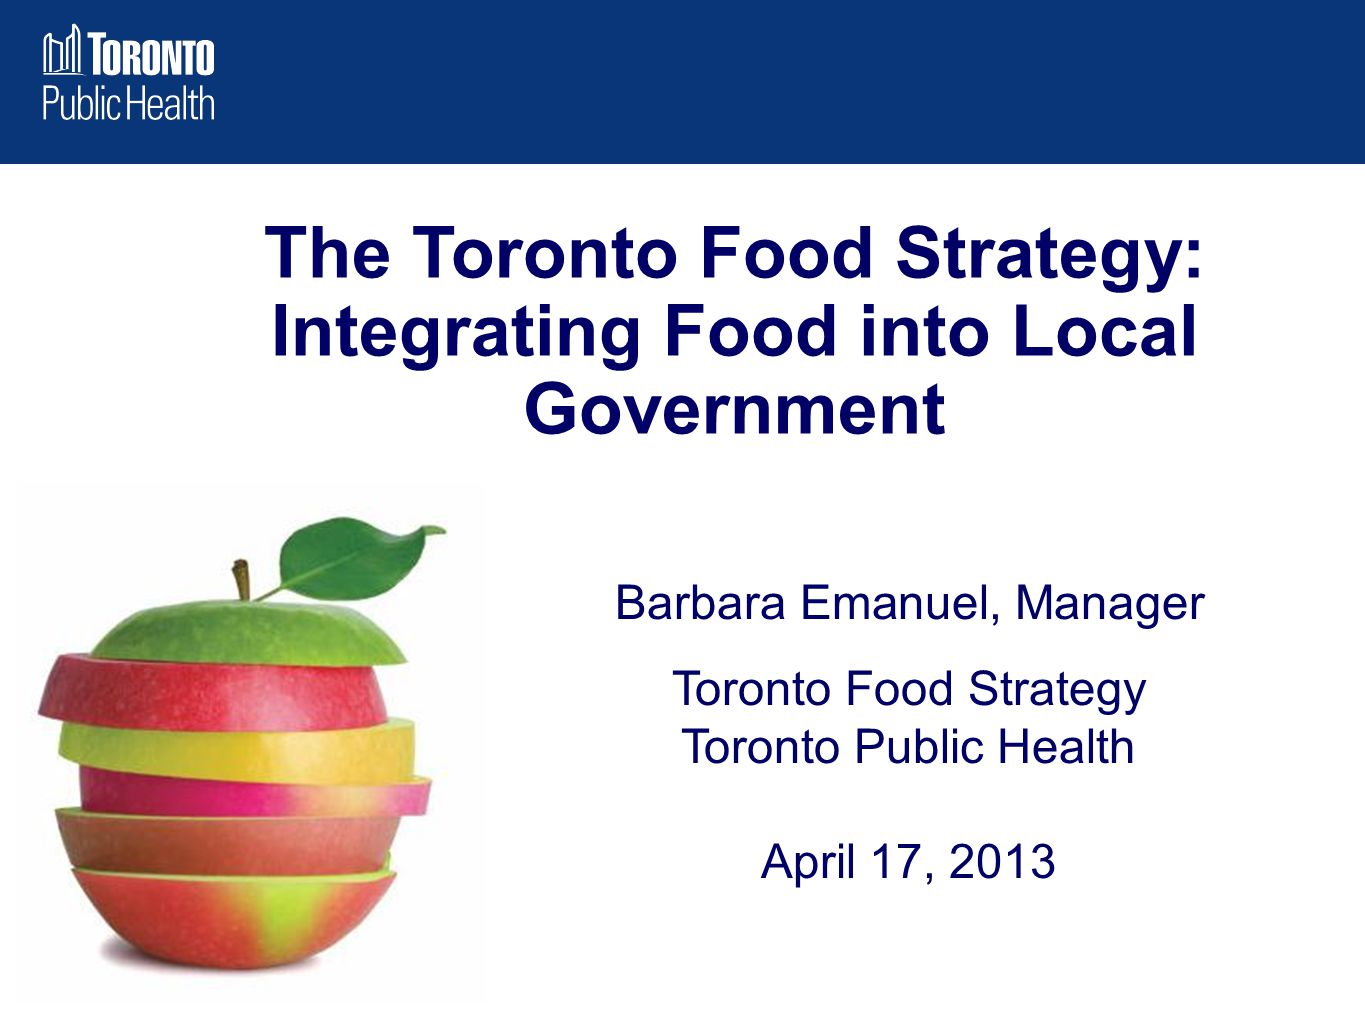 Barbara Emanuel, Manager Toronto Food Strategy Toronto Public Health April 17, 2013 The Toronto Food Strategy: Integrating Food into Local Government